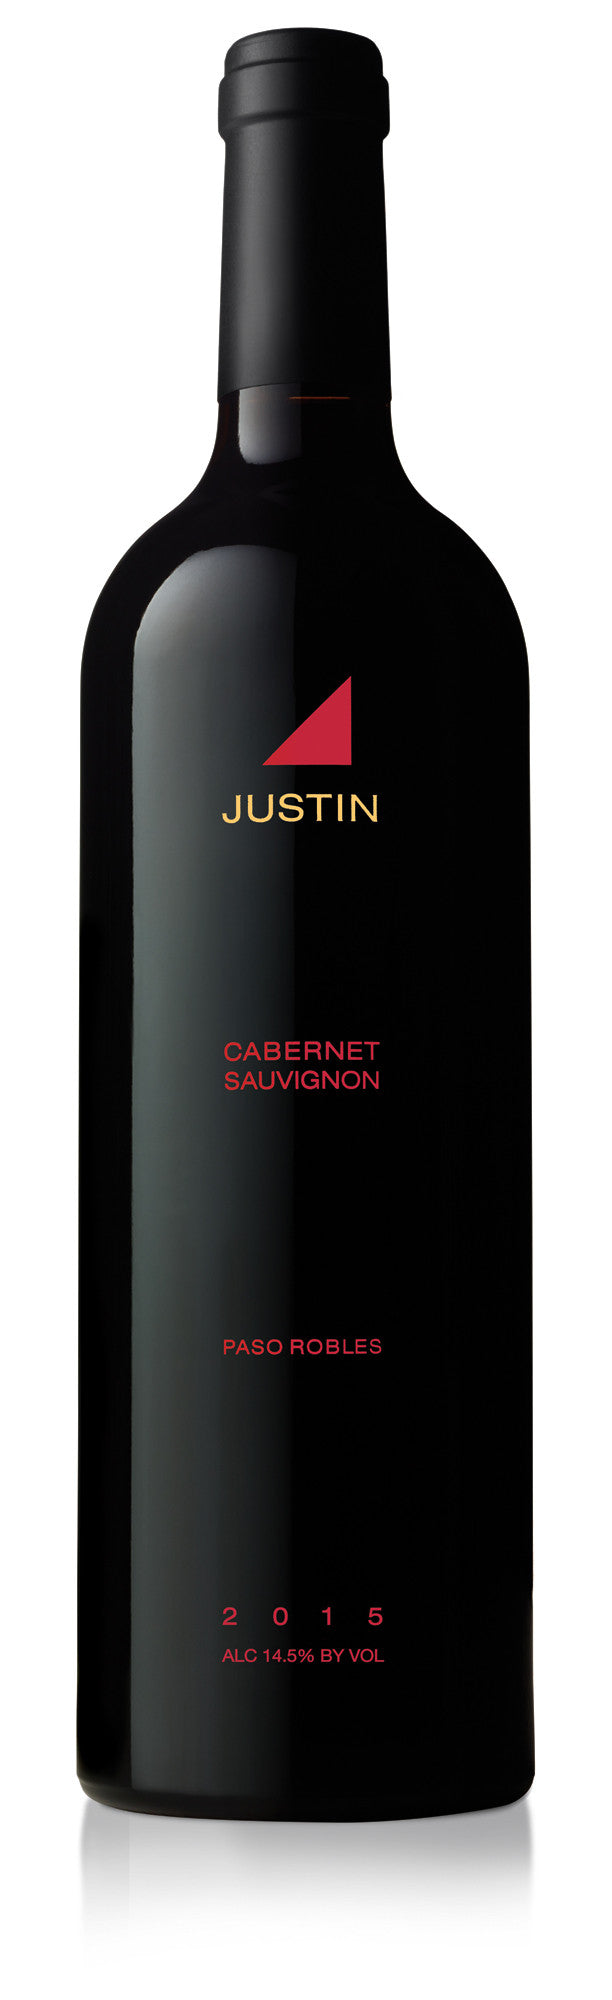 One case of Justin Cabernet Sauvignon